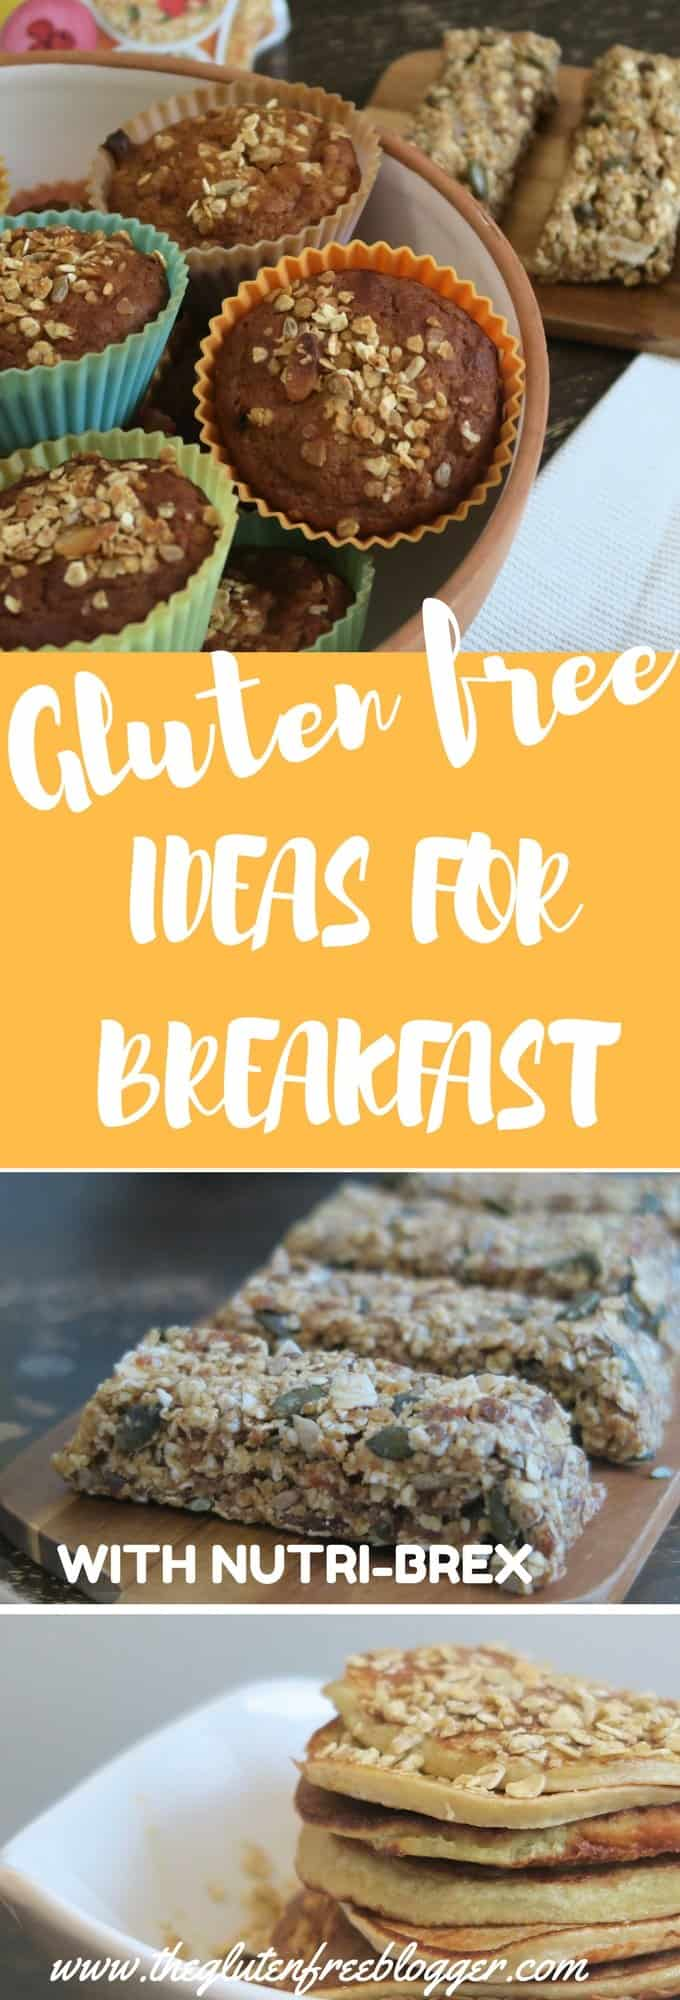 Easy gluten free breakfast ideas - breakfast muffins, protein pancakes, breakfast bars, breakfast crumbles, smoothies - www.theglutenfreeblogger.com